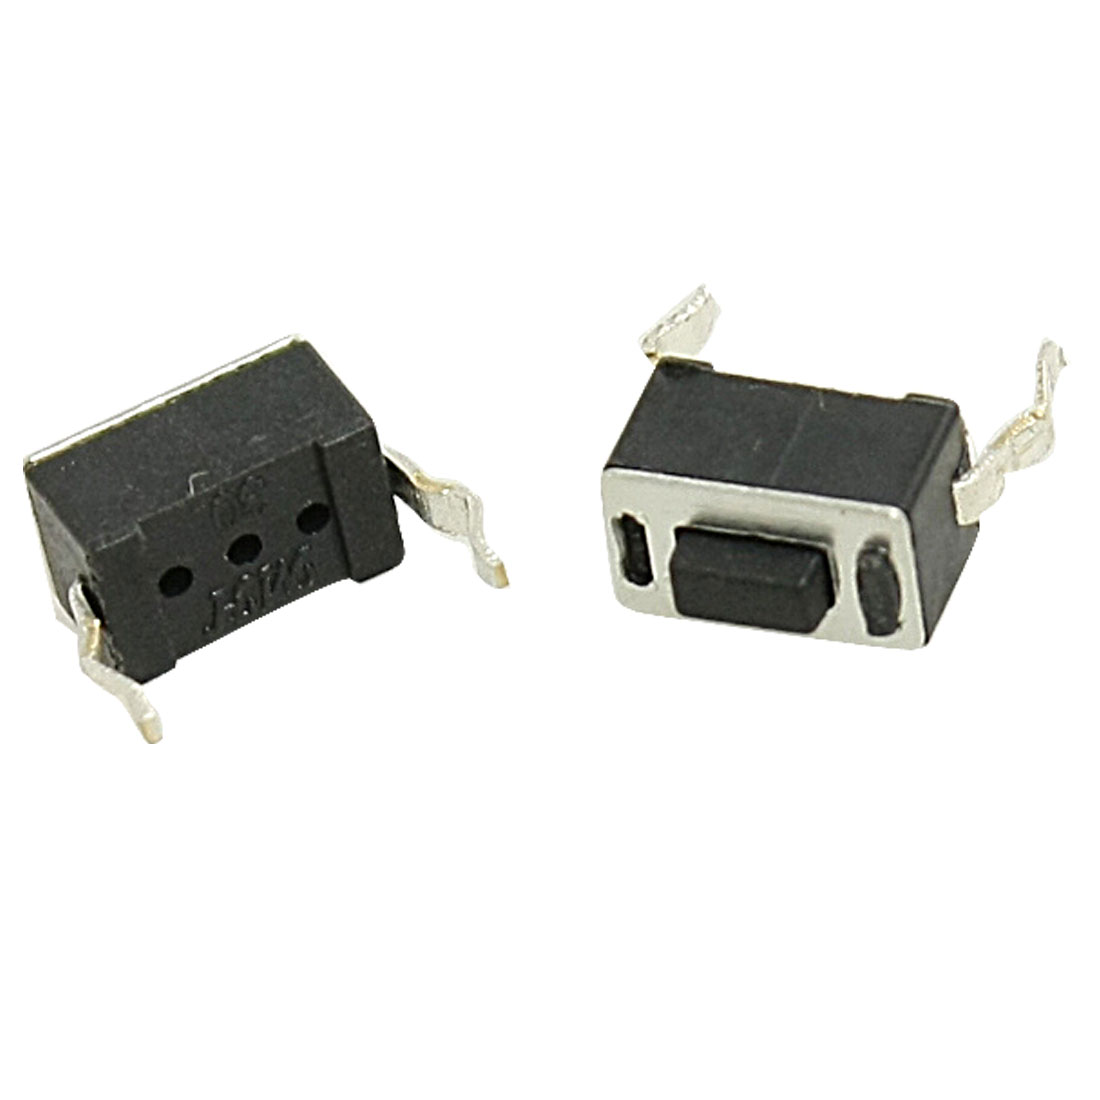 50x Momentary Tact Tactile Push Button Switch DIP Through Hole 3x6x4.3mm